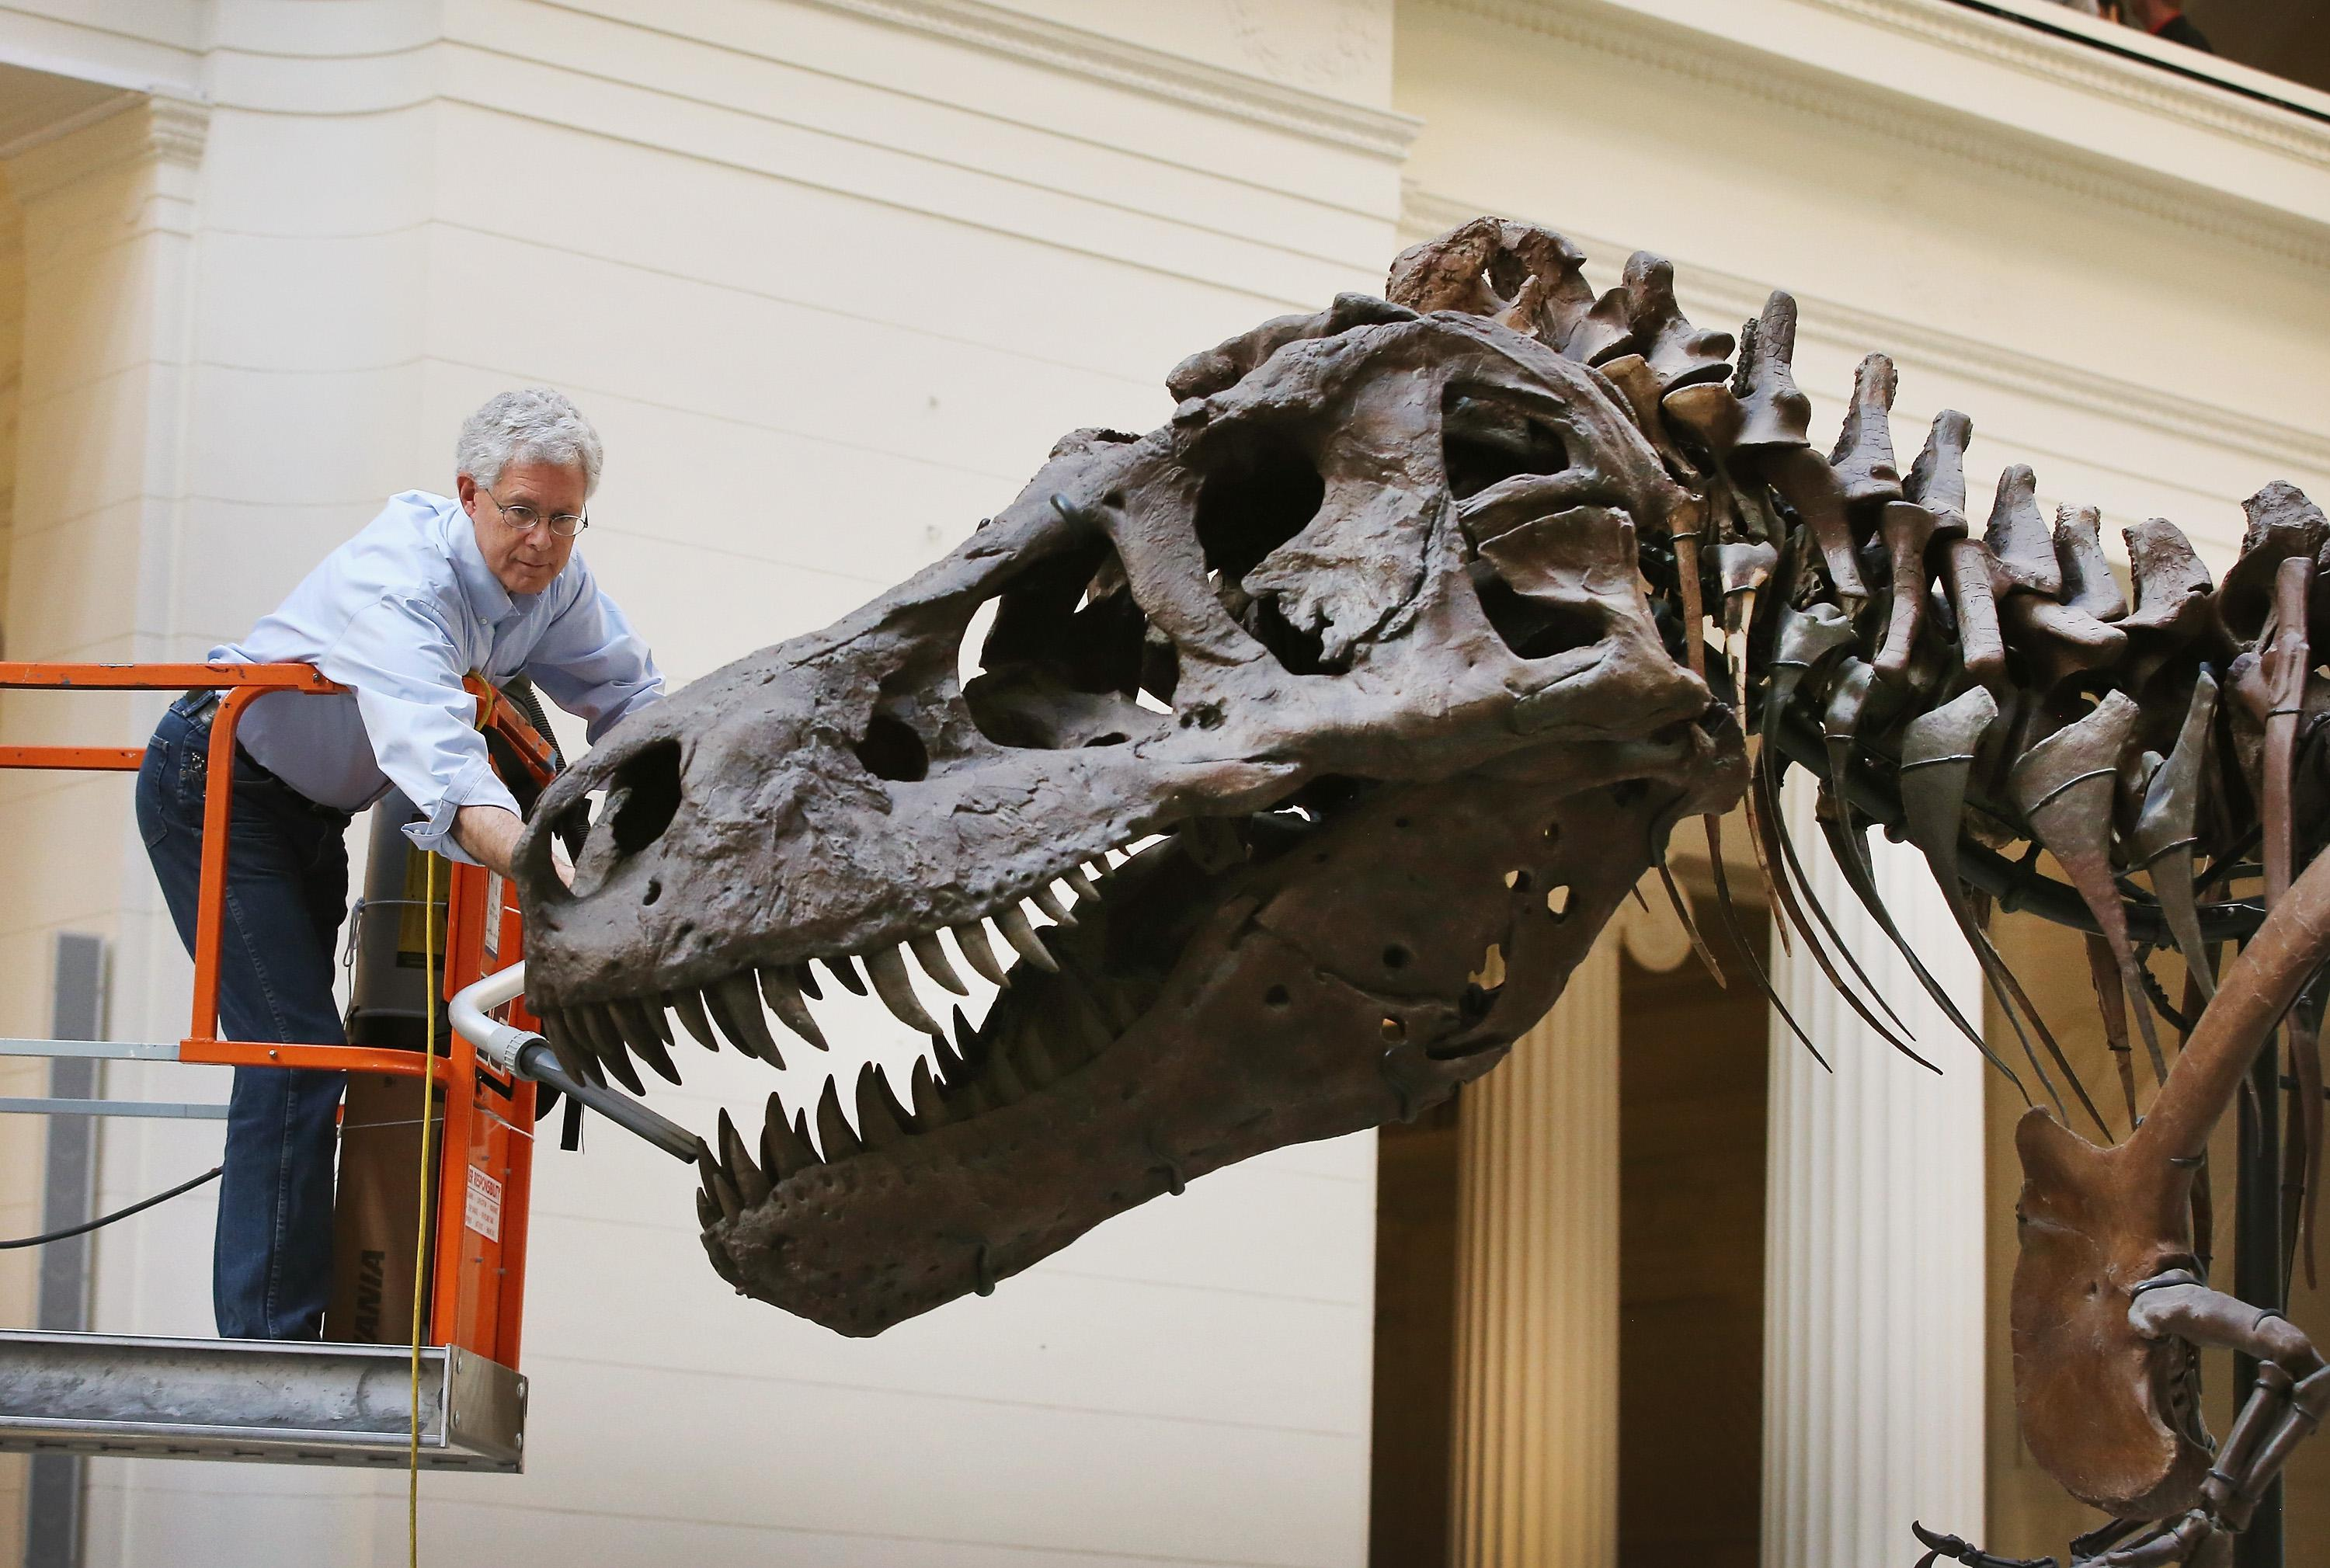 A geologist cleans Sue, a 67-million-year-old Tyrannosaurus Rex on display at the Field Museum in Chicago, Illinois.